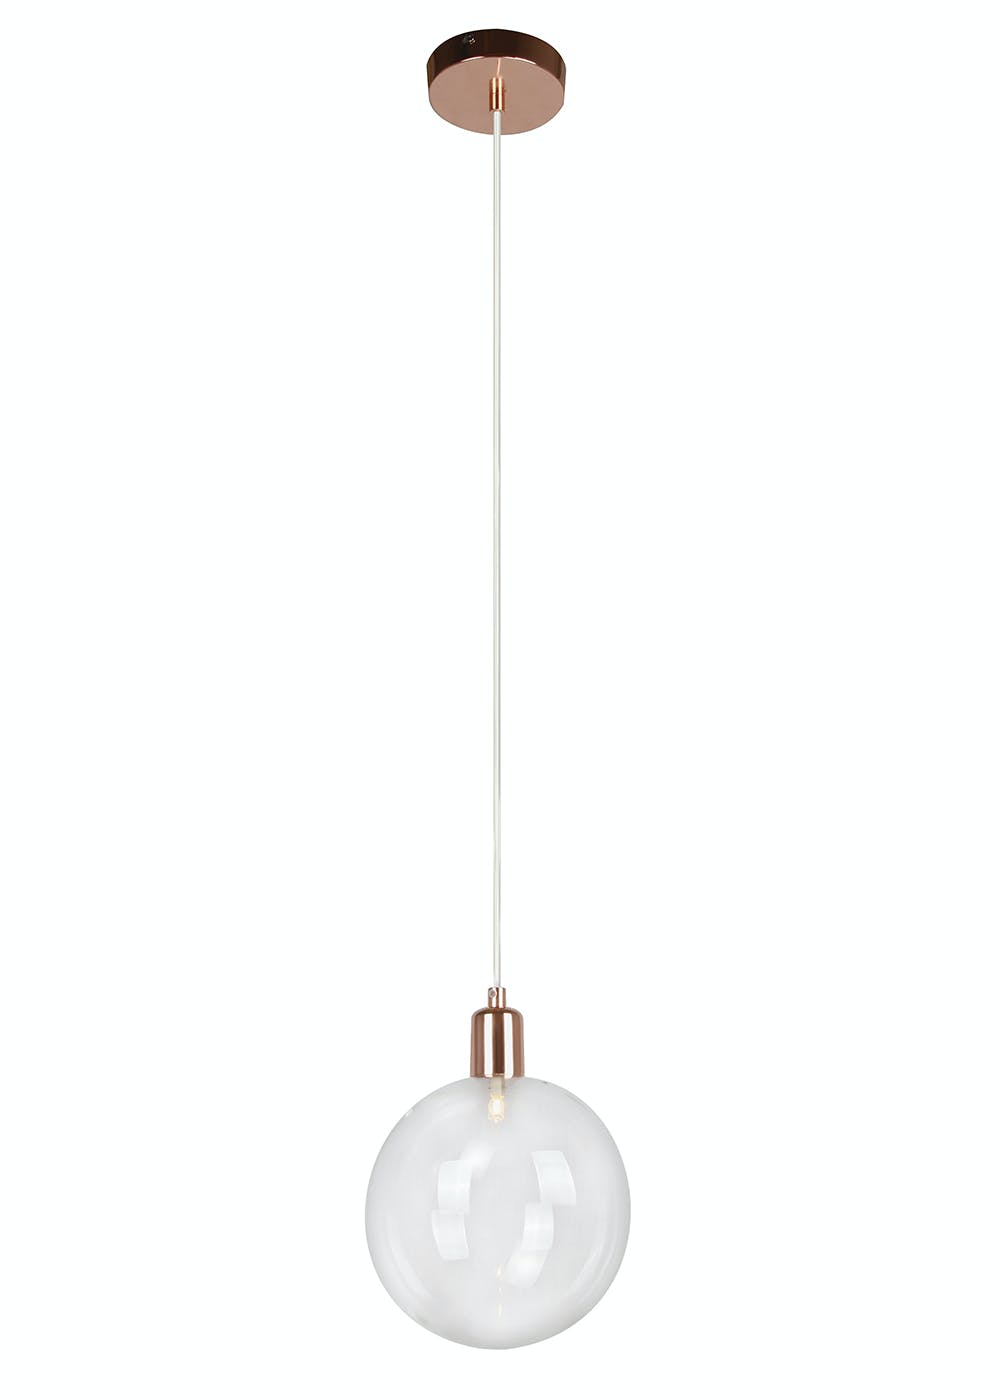 integrated alonsa white single pendant finish dar ceiling in type led lighting image large